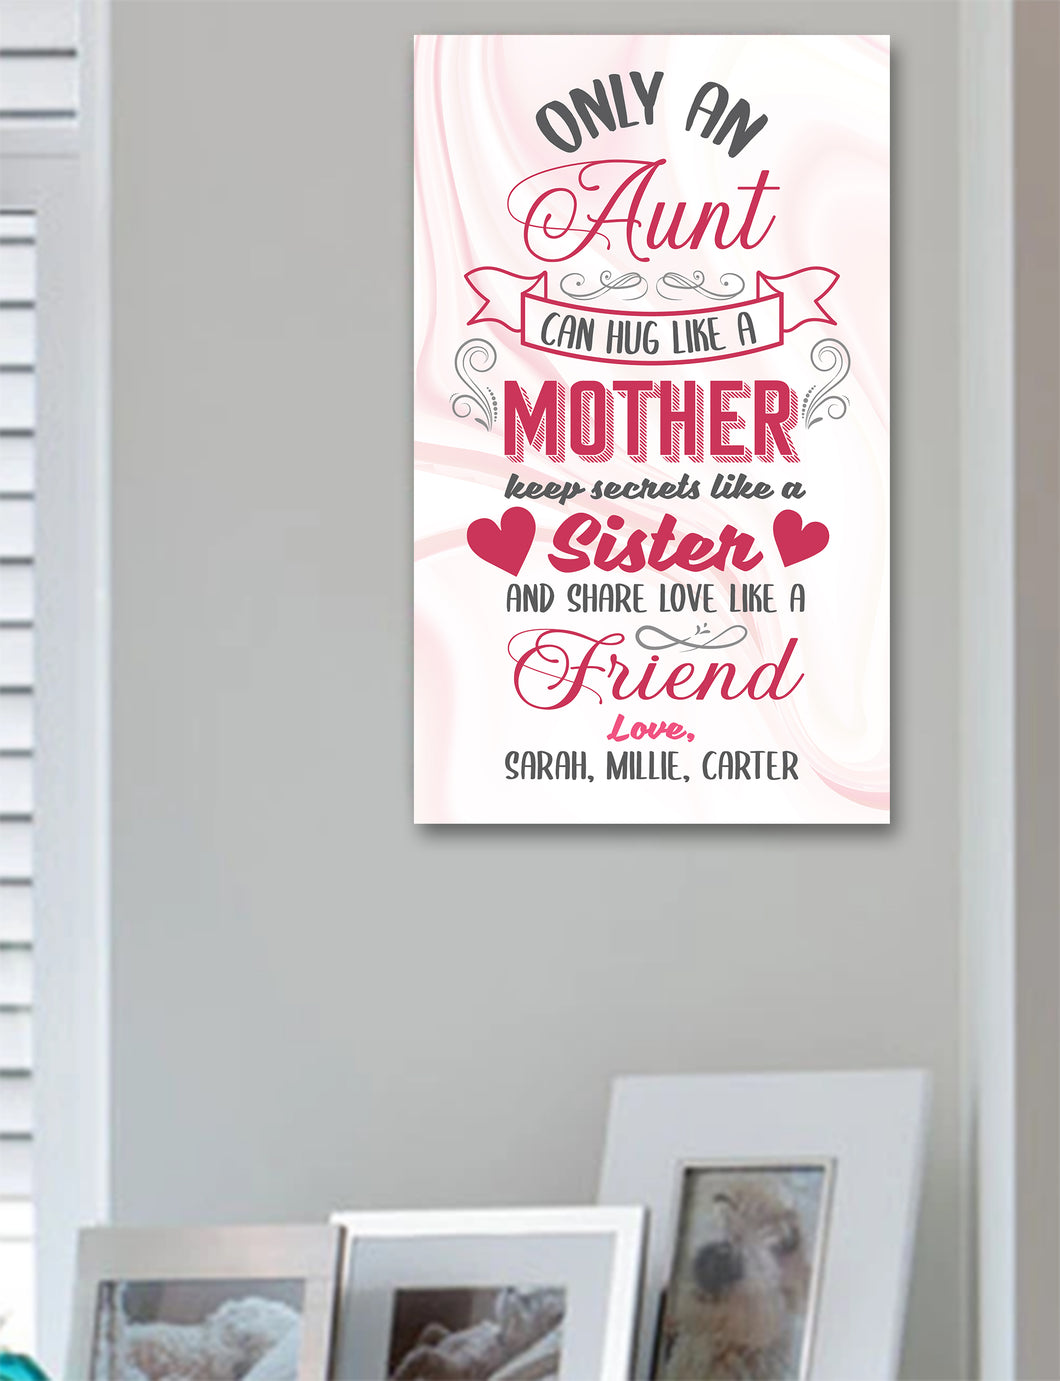 Only An Aunt Can Hug like A Mother Personalized Wood Sign